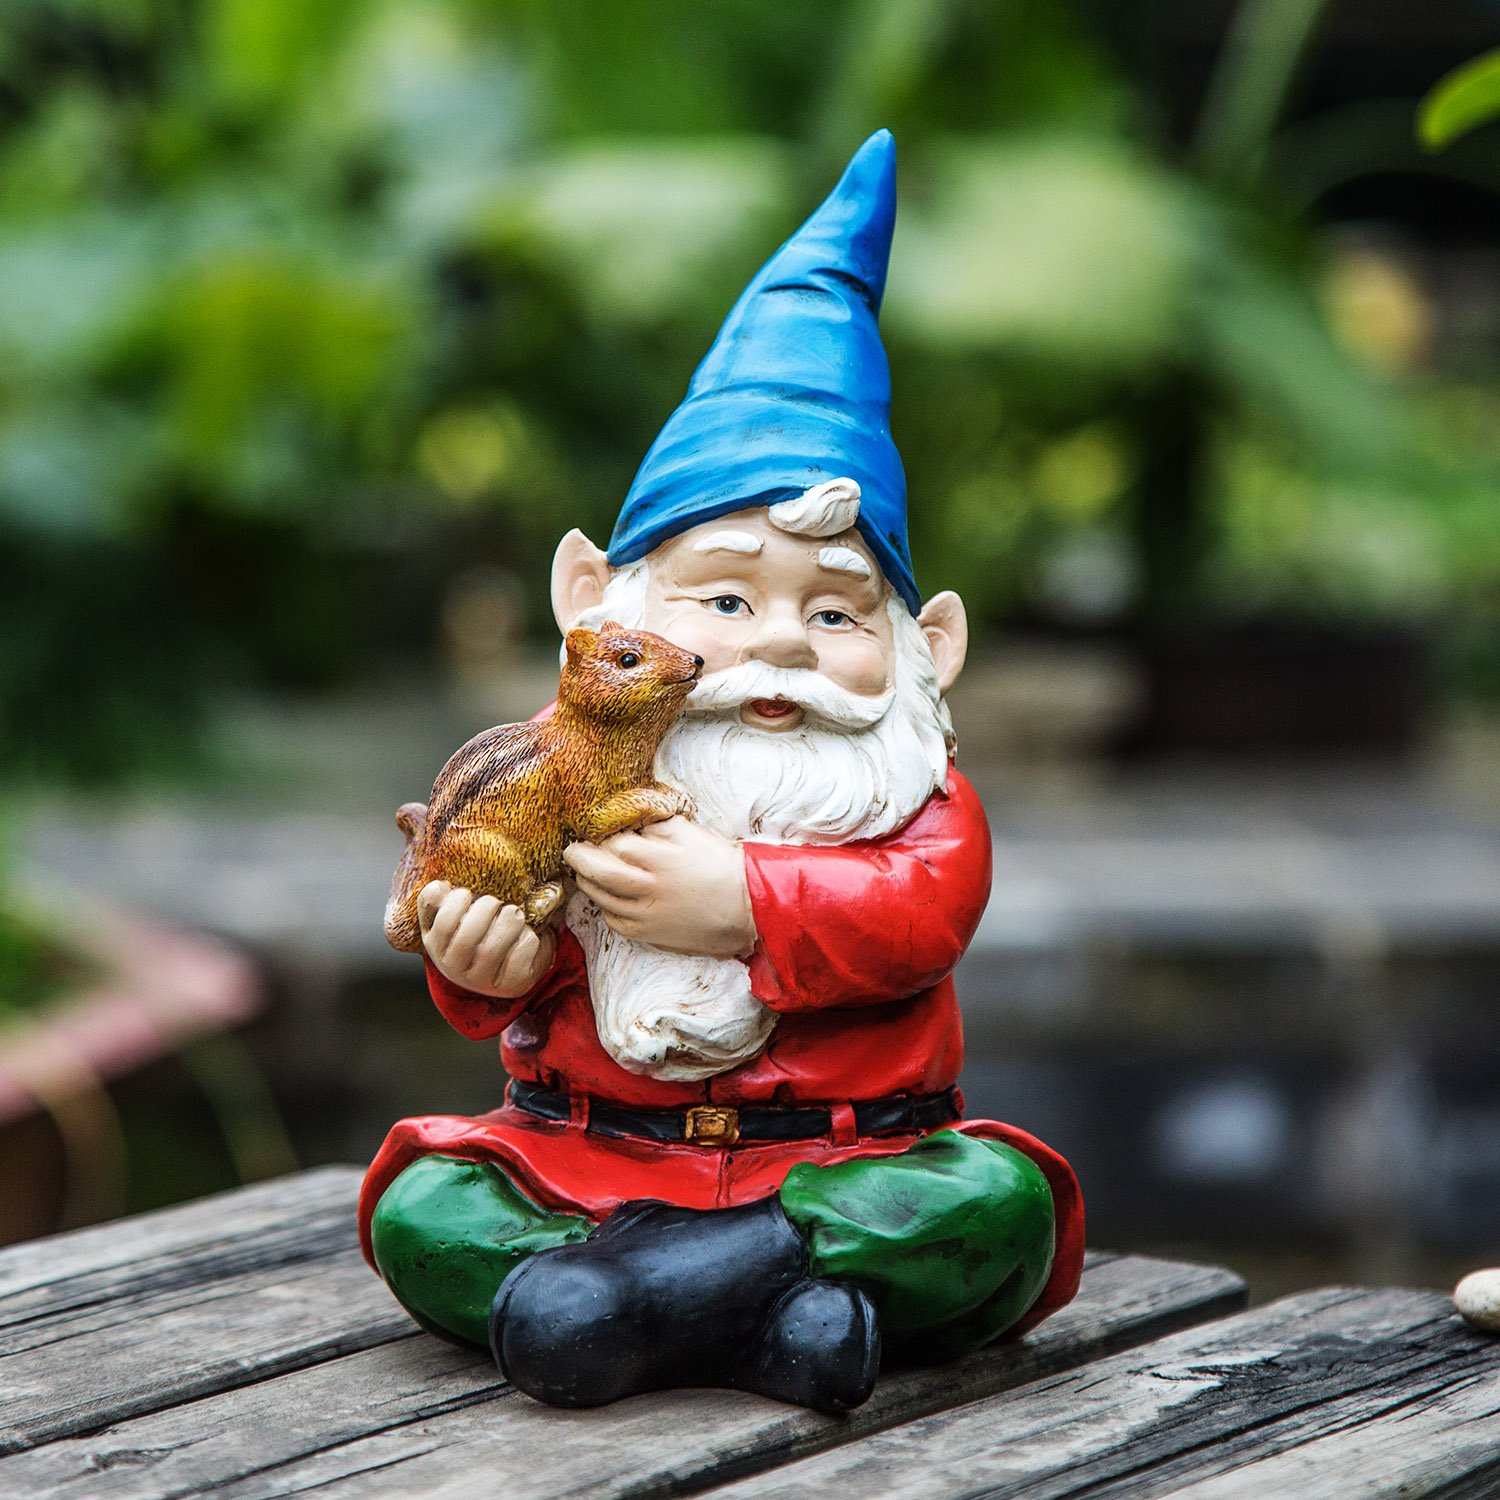 Ivy Home Garden Gnome Decorations Outdoor Statues,Spirit Carried A Squirrel